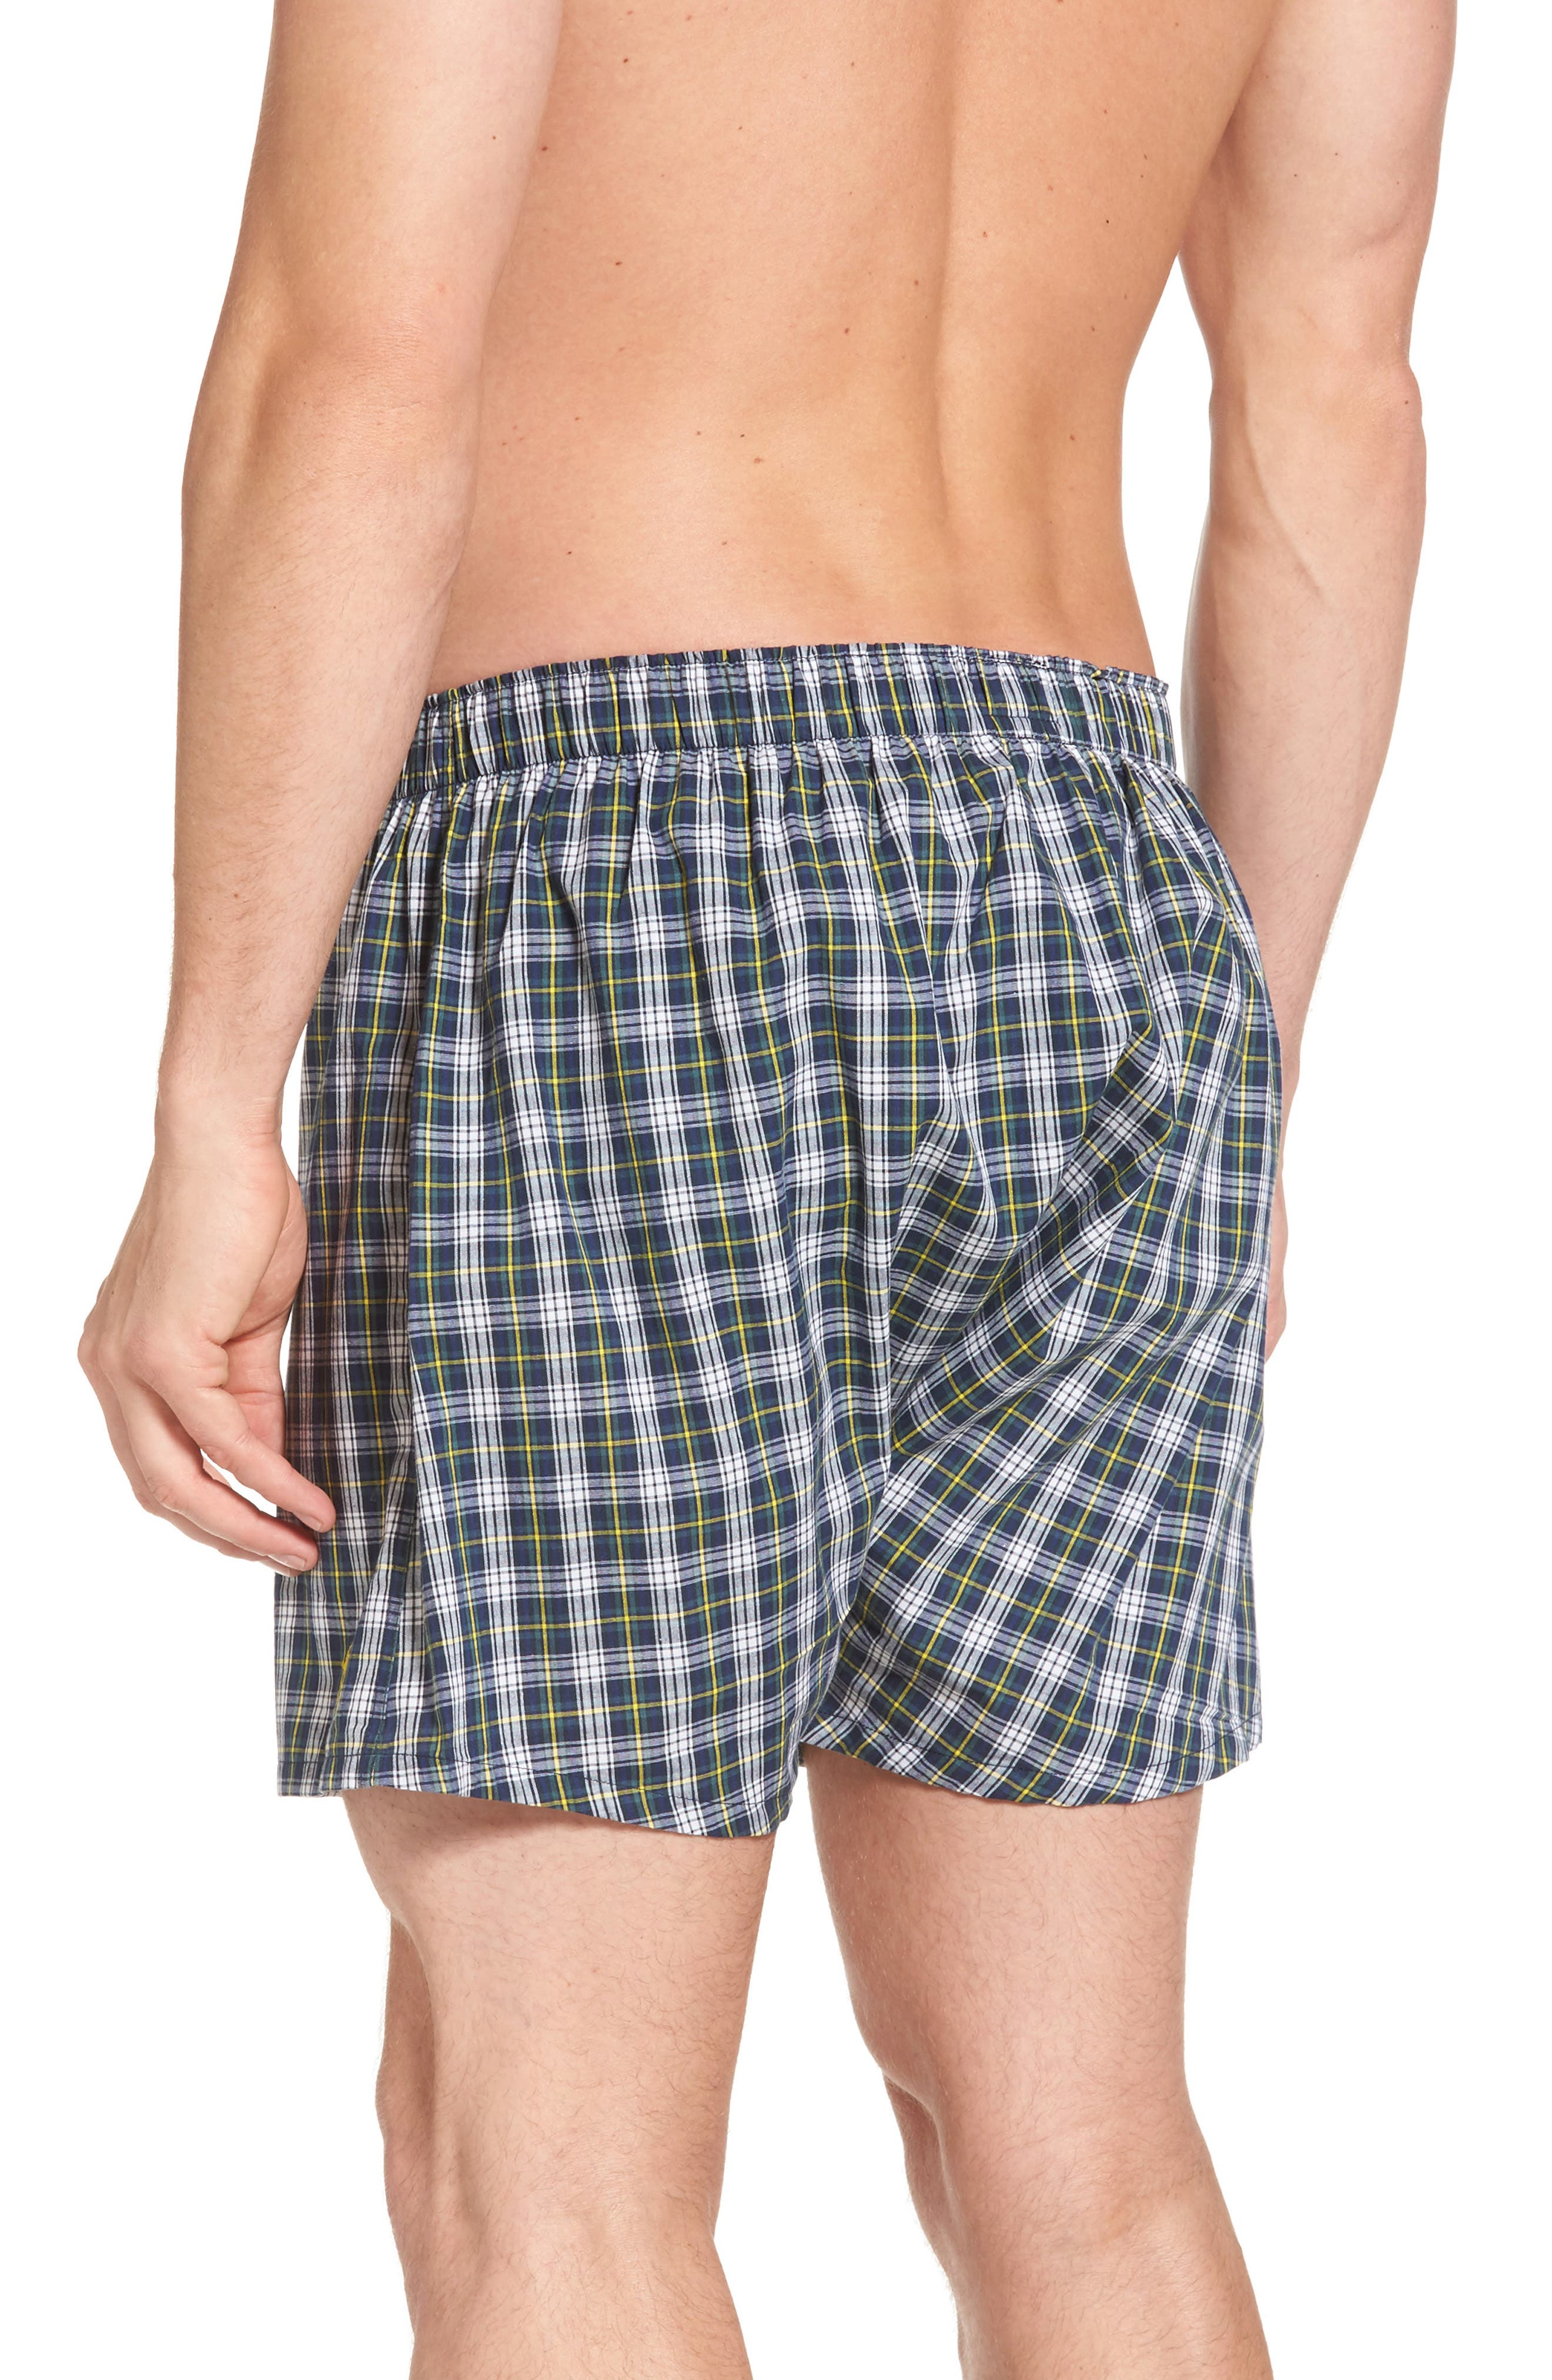 Assorted 3-Pack Woven Cotton Boxers,                             Alternate thumbnail 3, color,                             Blue/ Green Plaid/ Navy Plaid